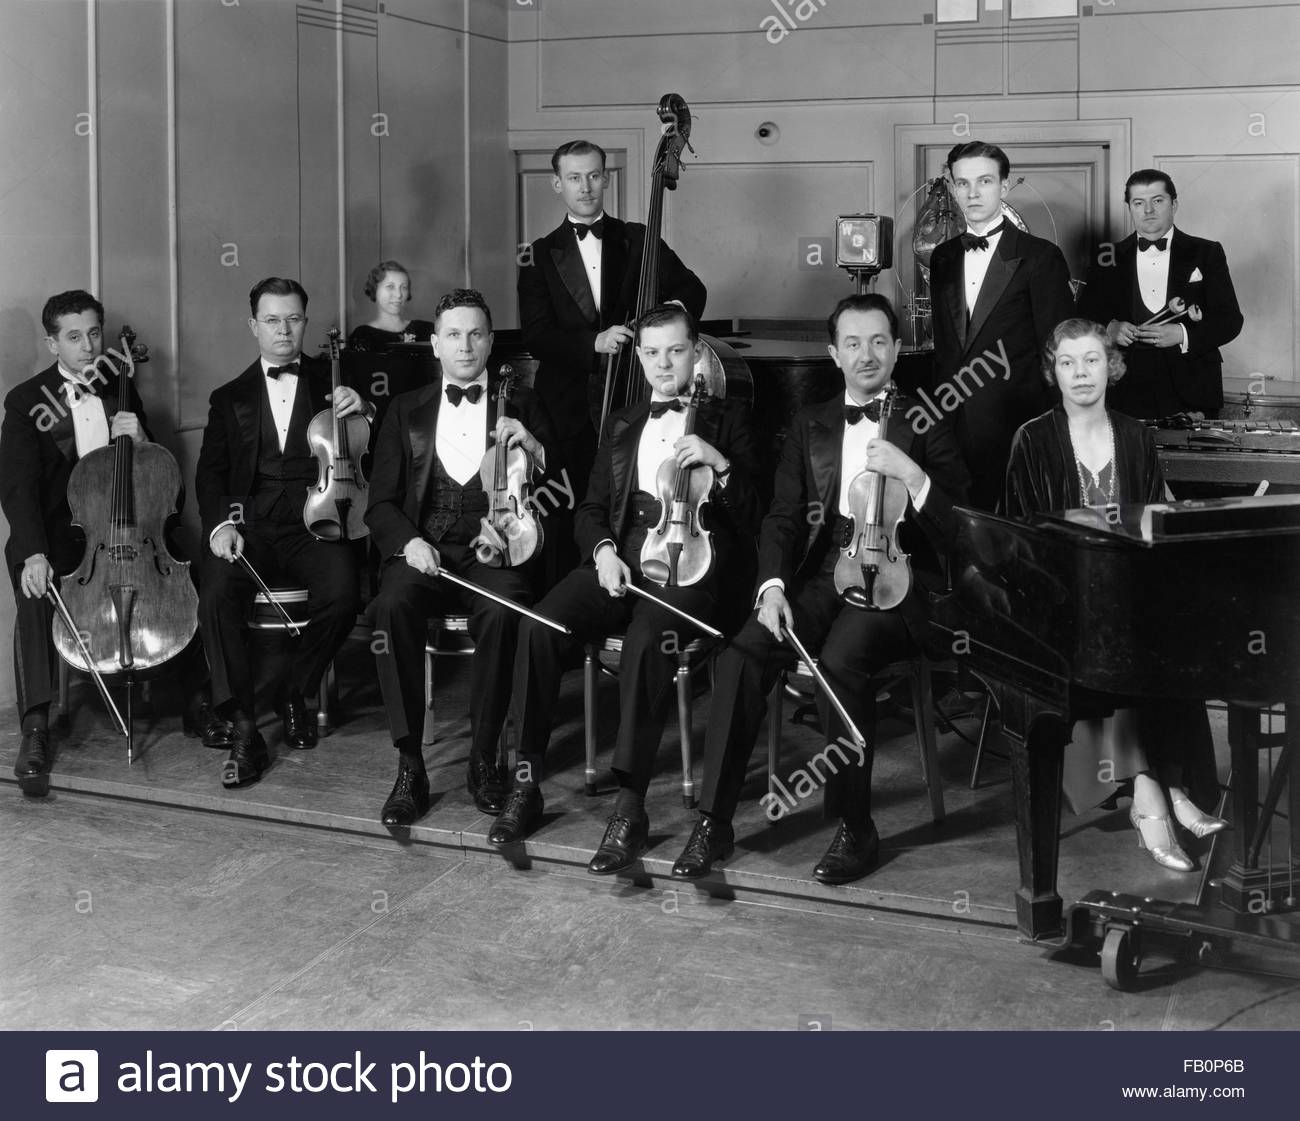 Beverly Theater and other Chicago views, 1935 Aug. 15. Group of musicians. - Stock Image